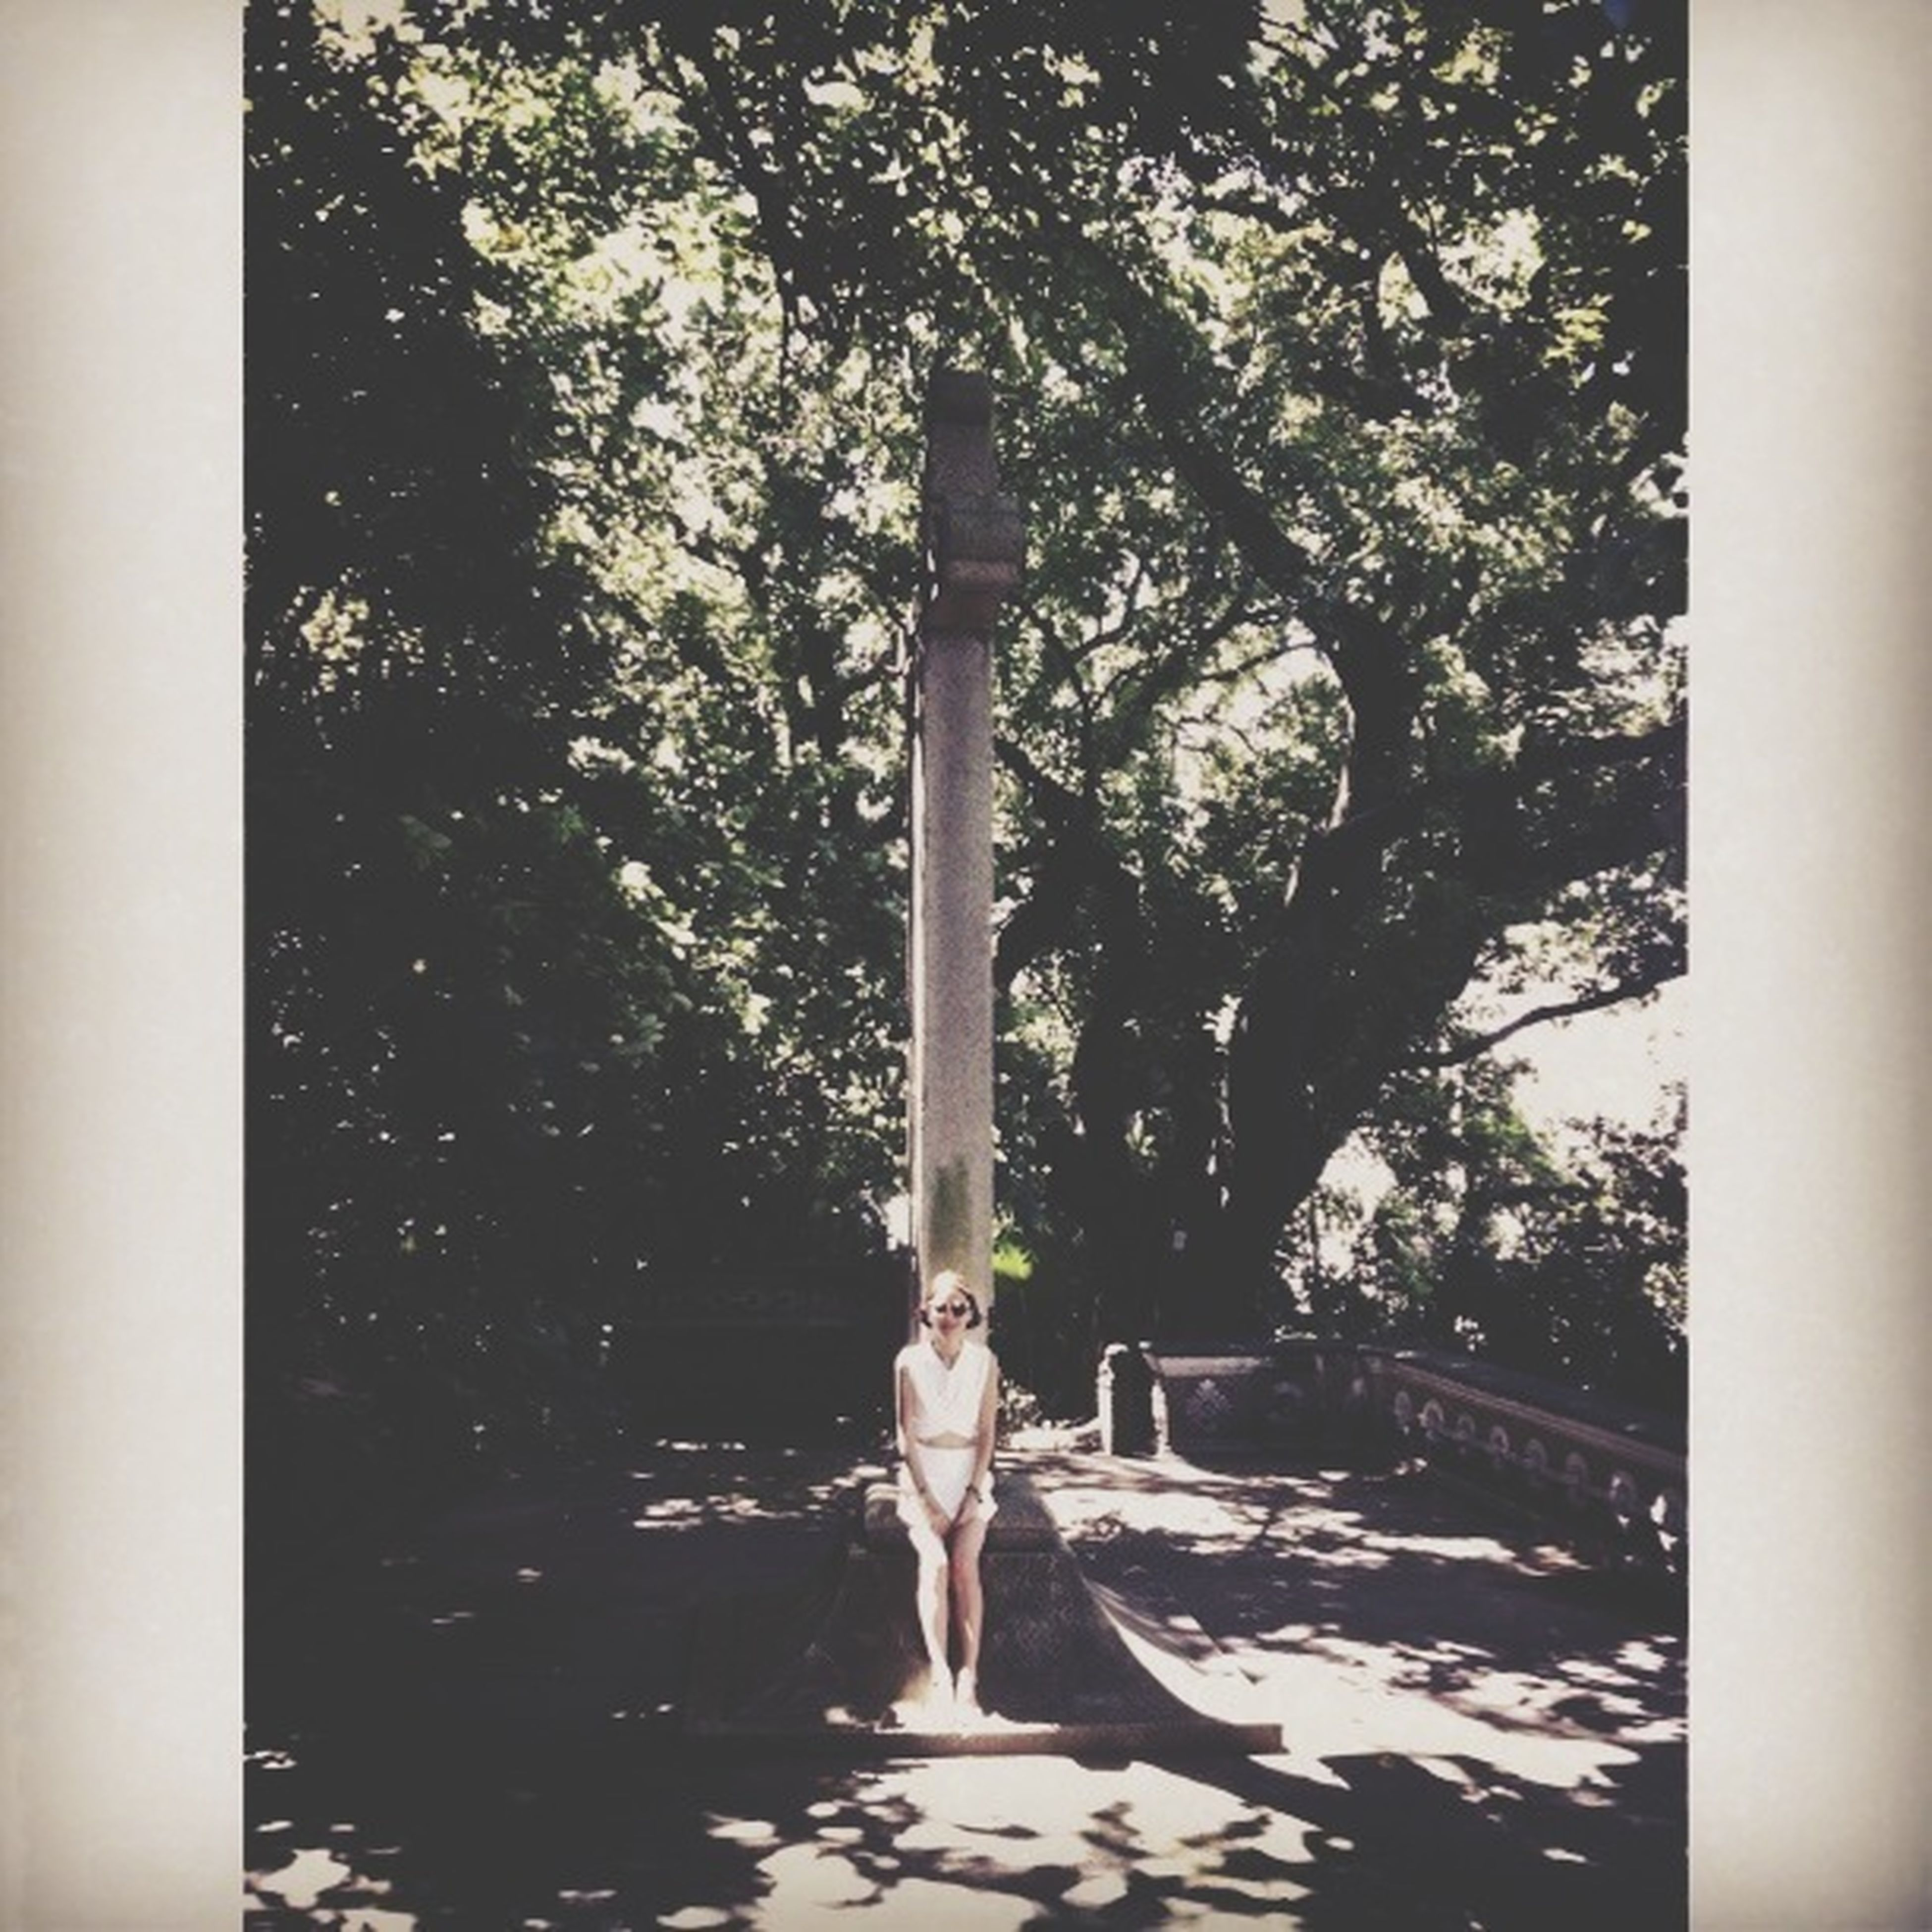 tree, transfer print, auto post production filter, tree trunk, day, outdoors, branch, growth, street light, nature, built structure, lighting equipment, full length, architecture, park - man made space, sunlight, pole